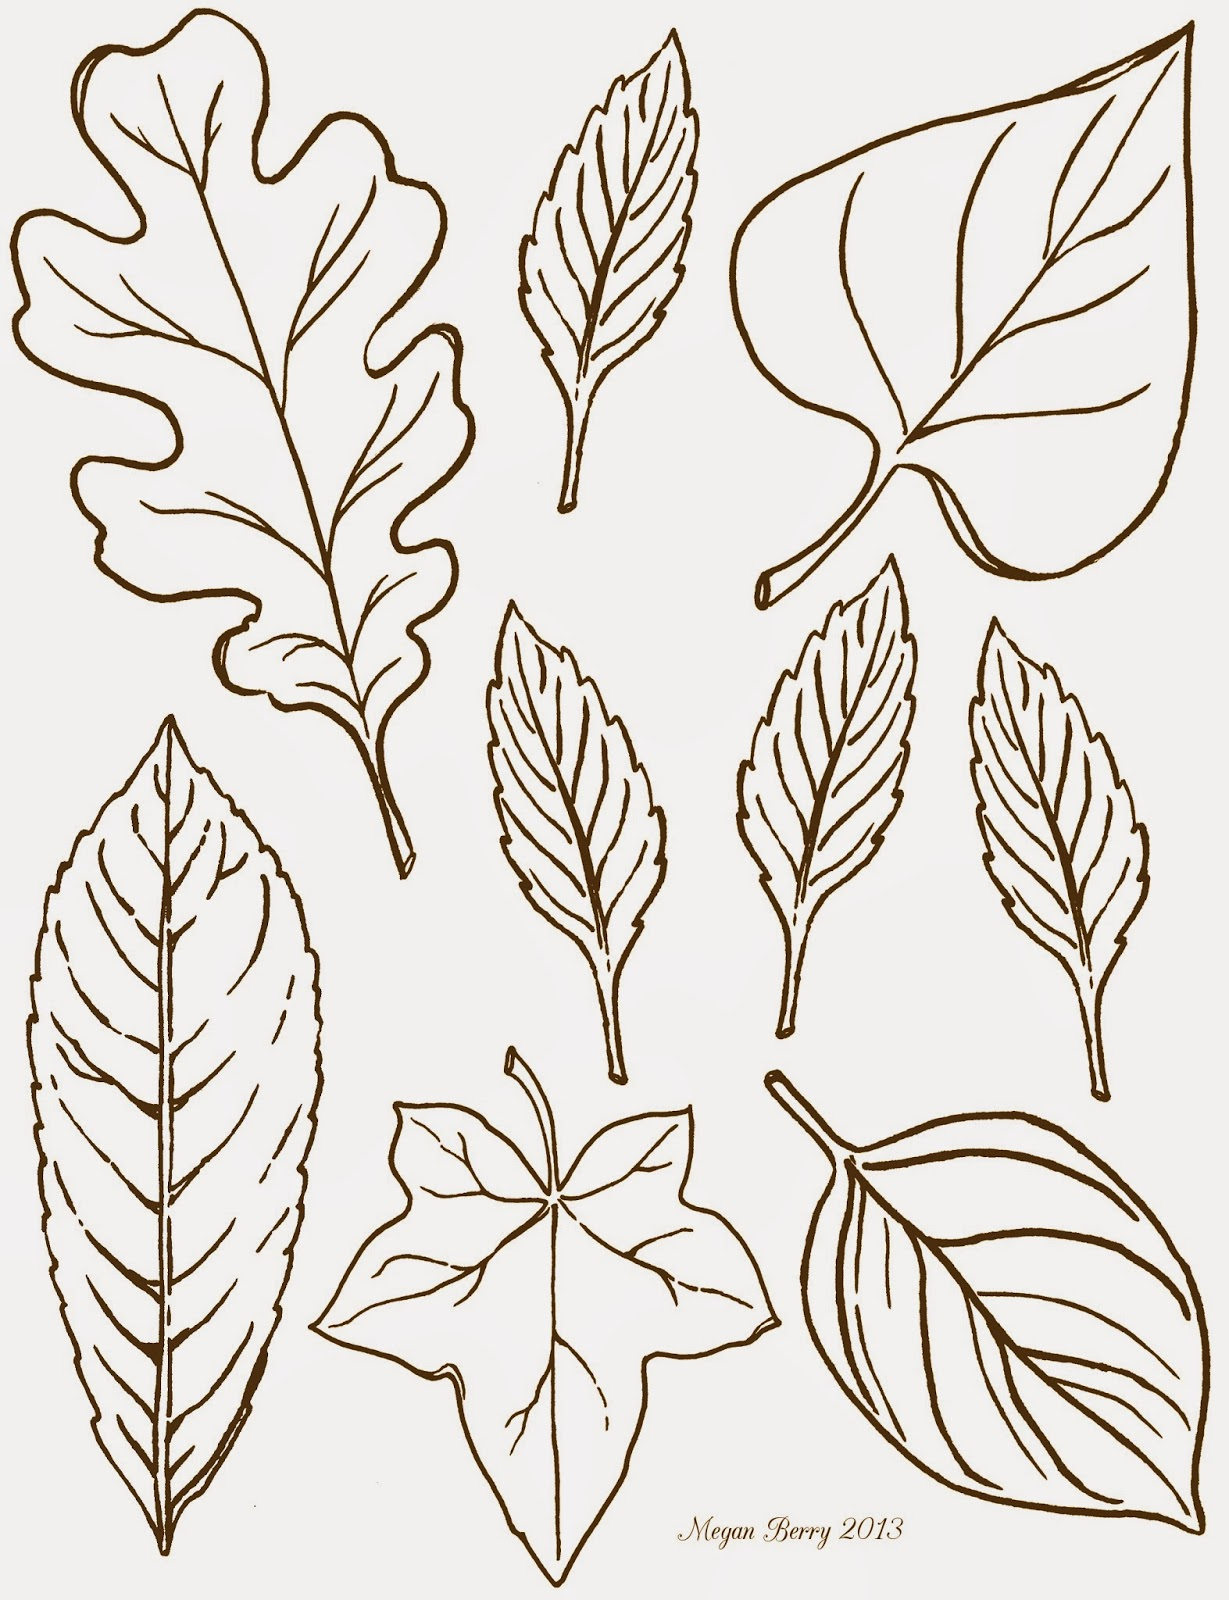 5 Images of Fall Leaves Clip Art Free Printable